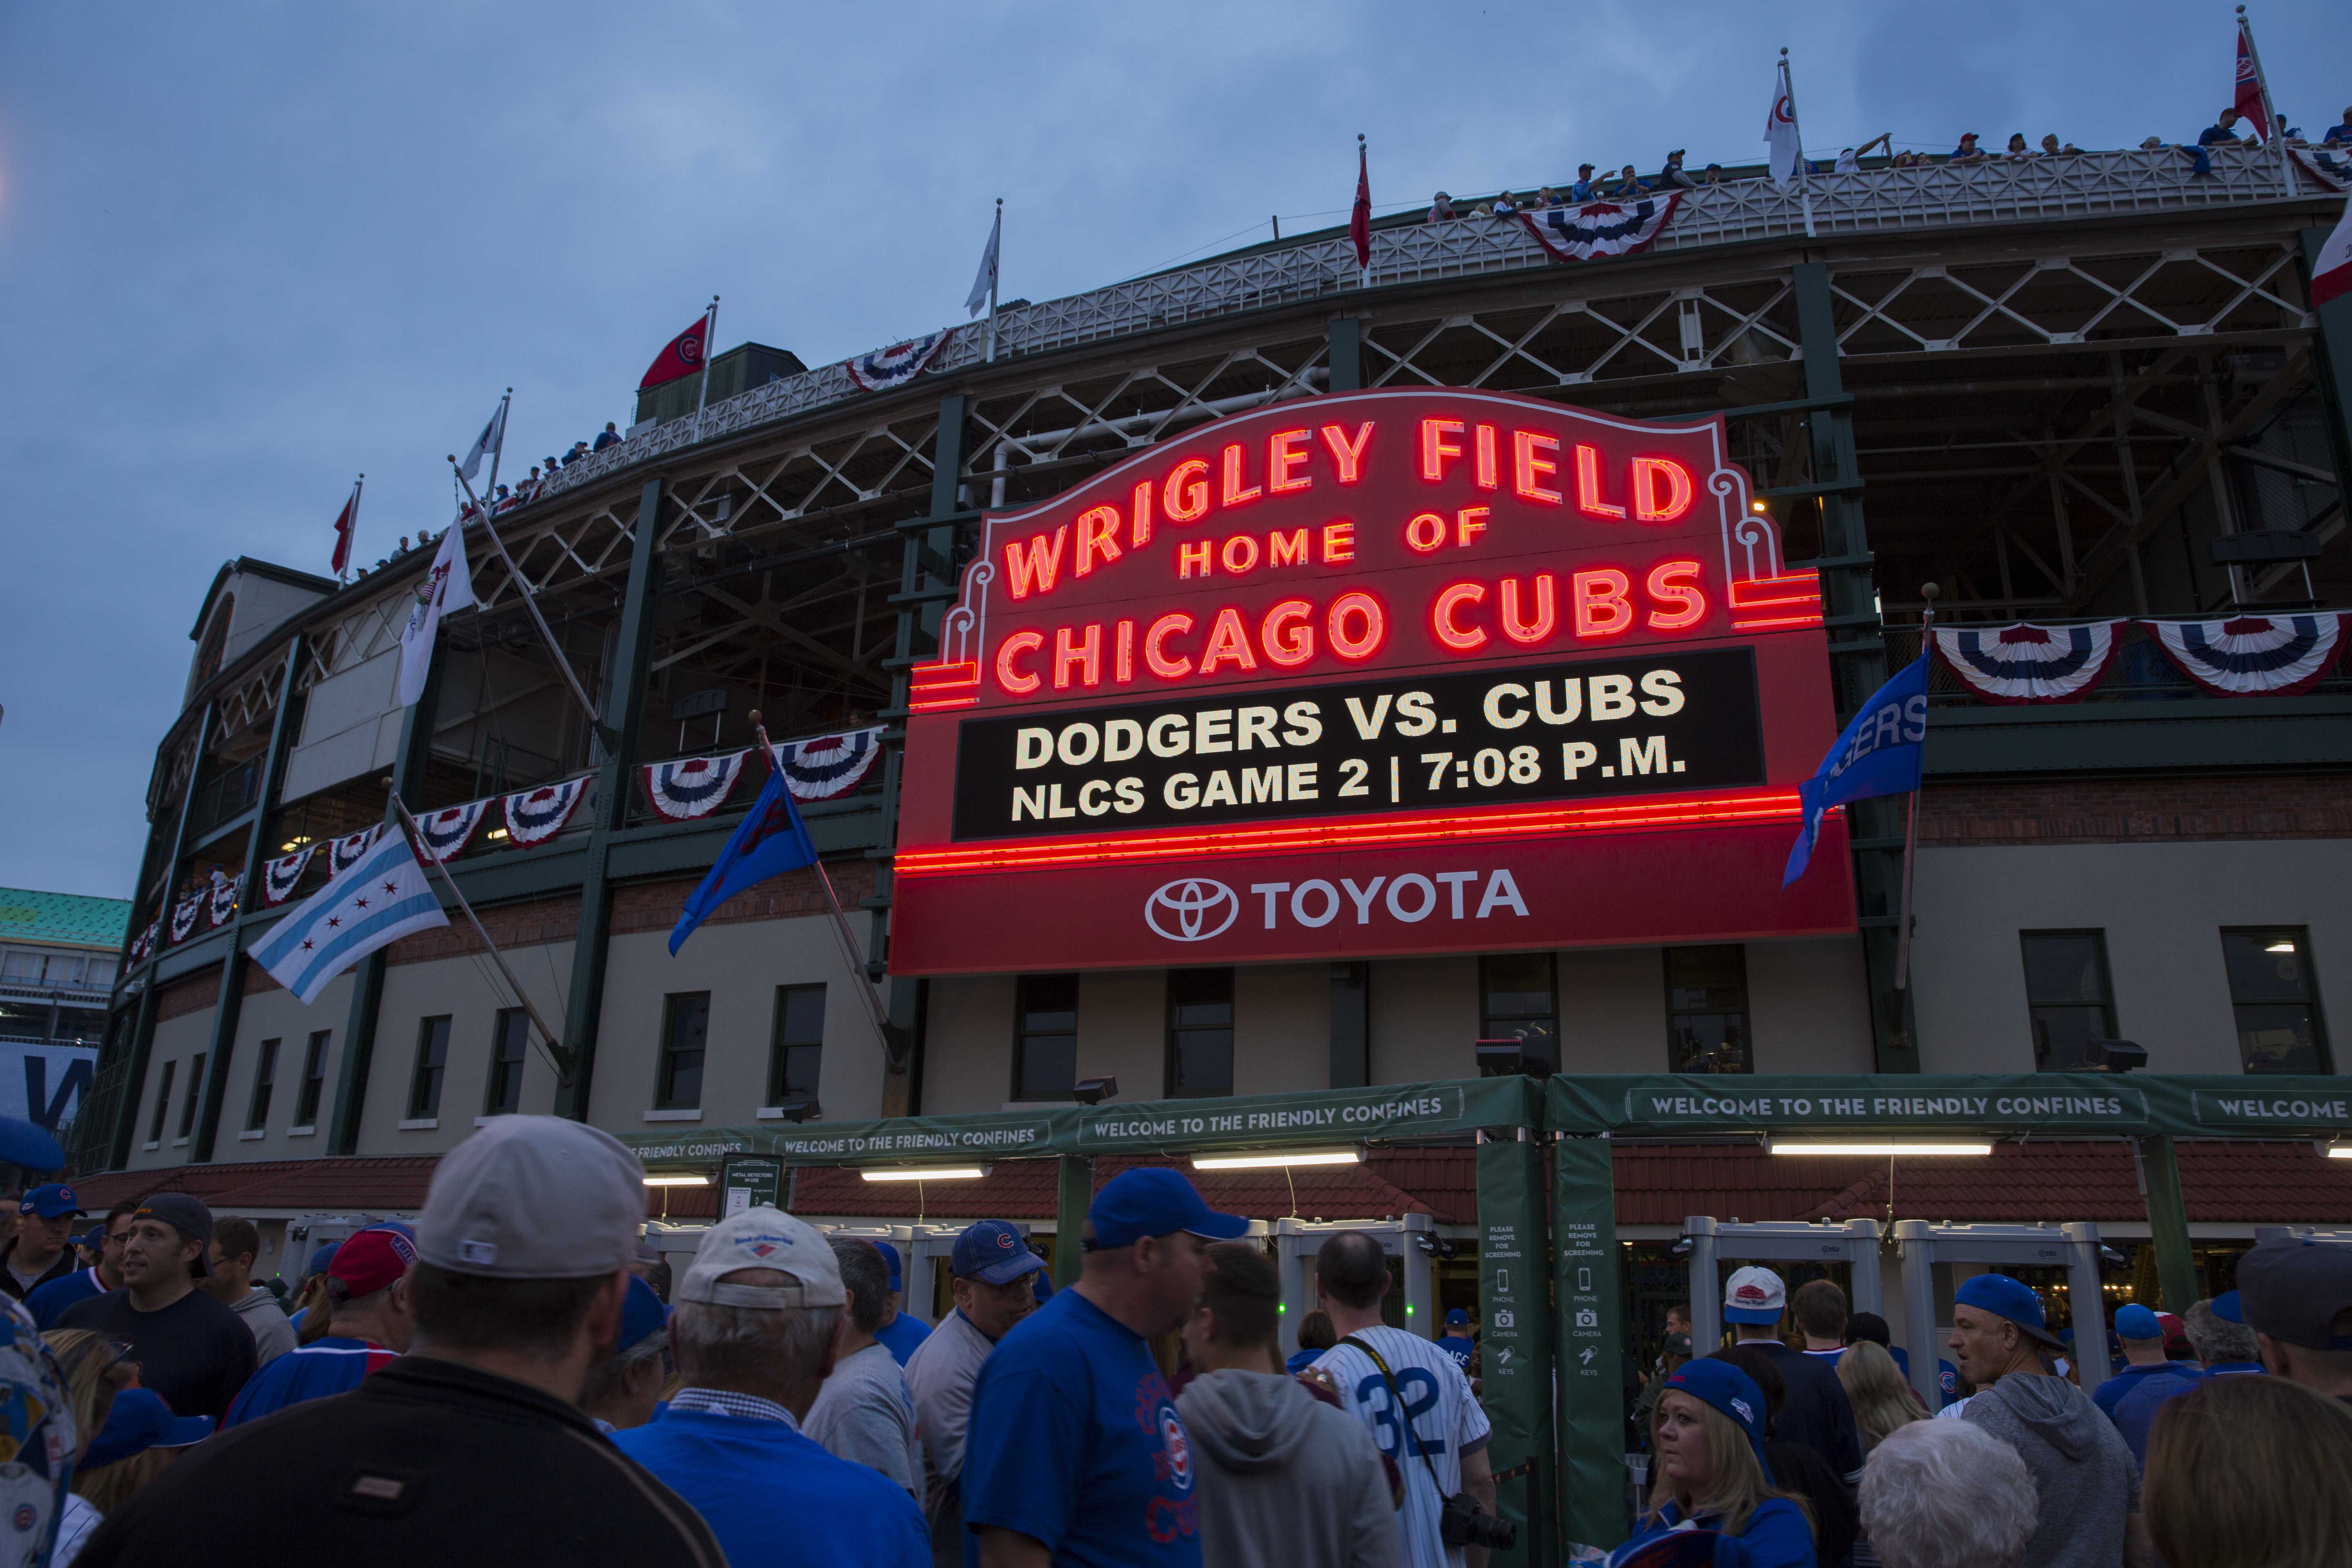 The Cubs played the Los Angeles Dodgers Oct. 16 in game two of the National League Championship Series (NLCS). (Geoff Stellfox | The DePaulia)